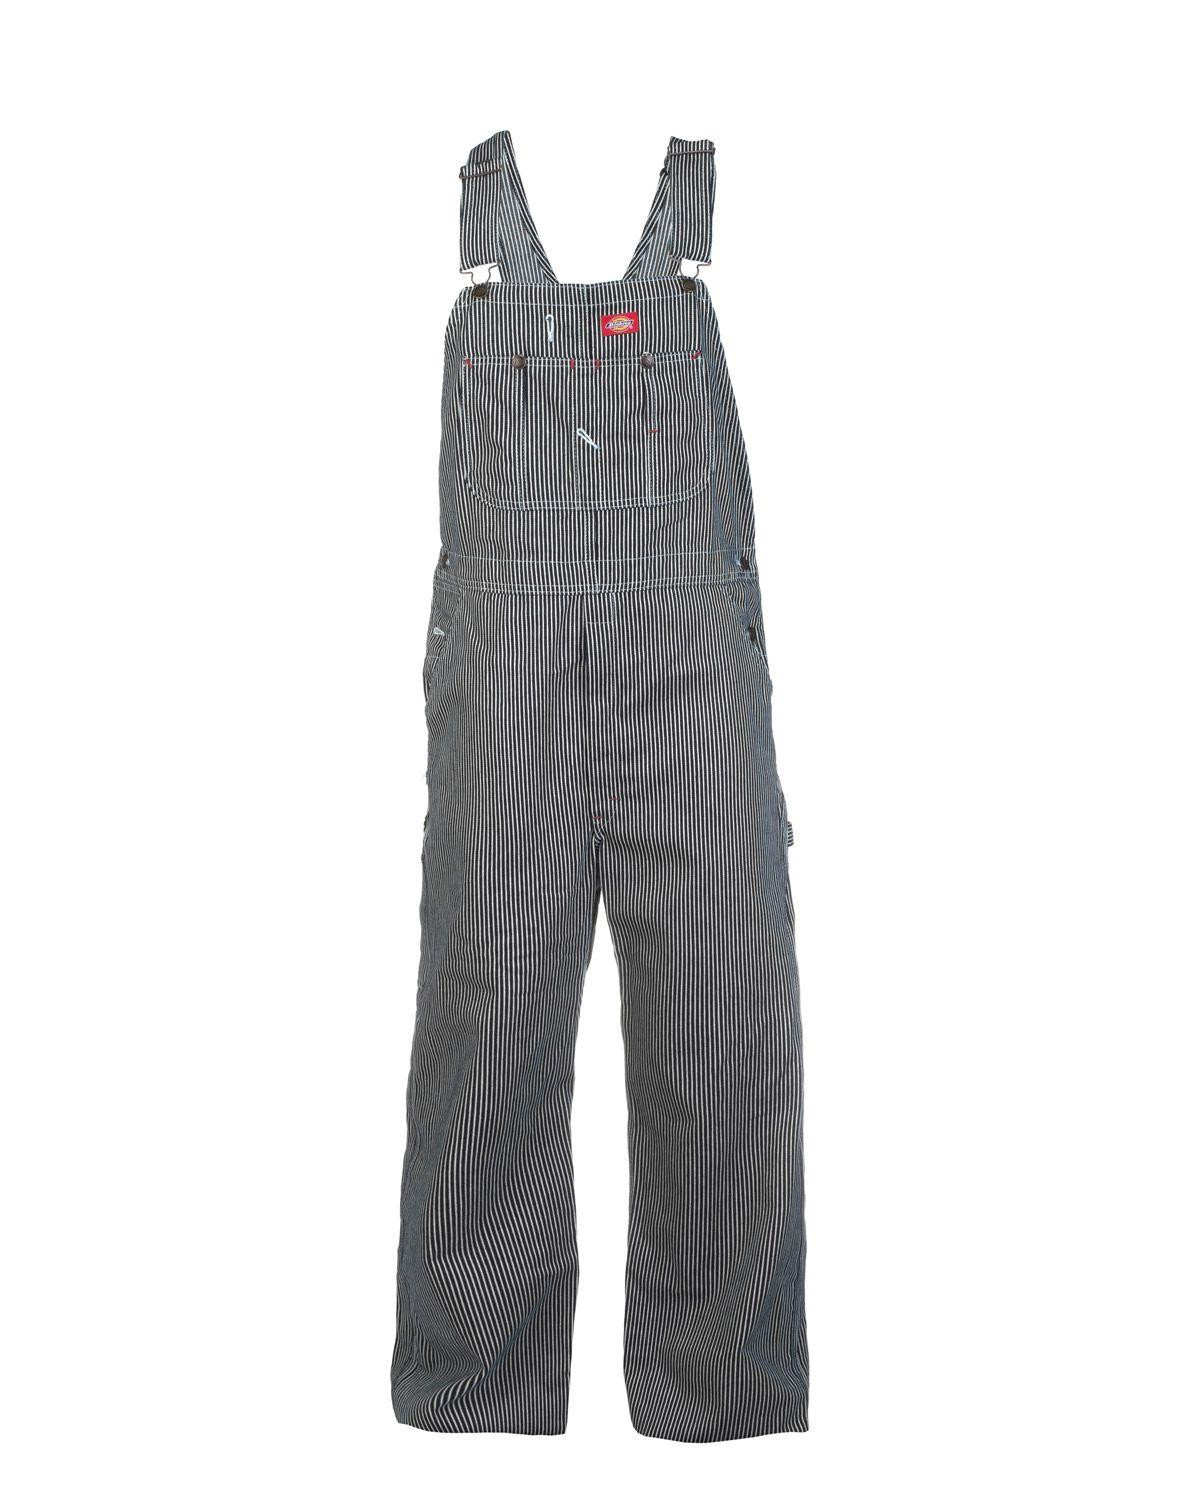 Image of   Dickies Bib Overall (Hickory Stripe, W36 / L34)